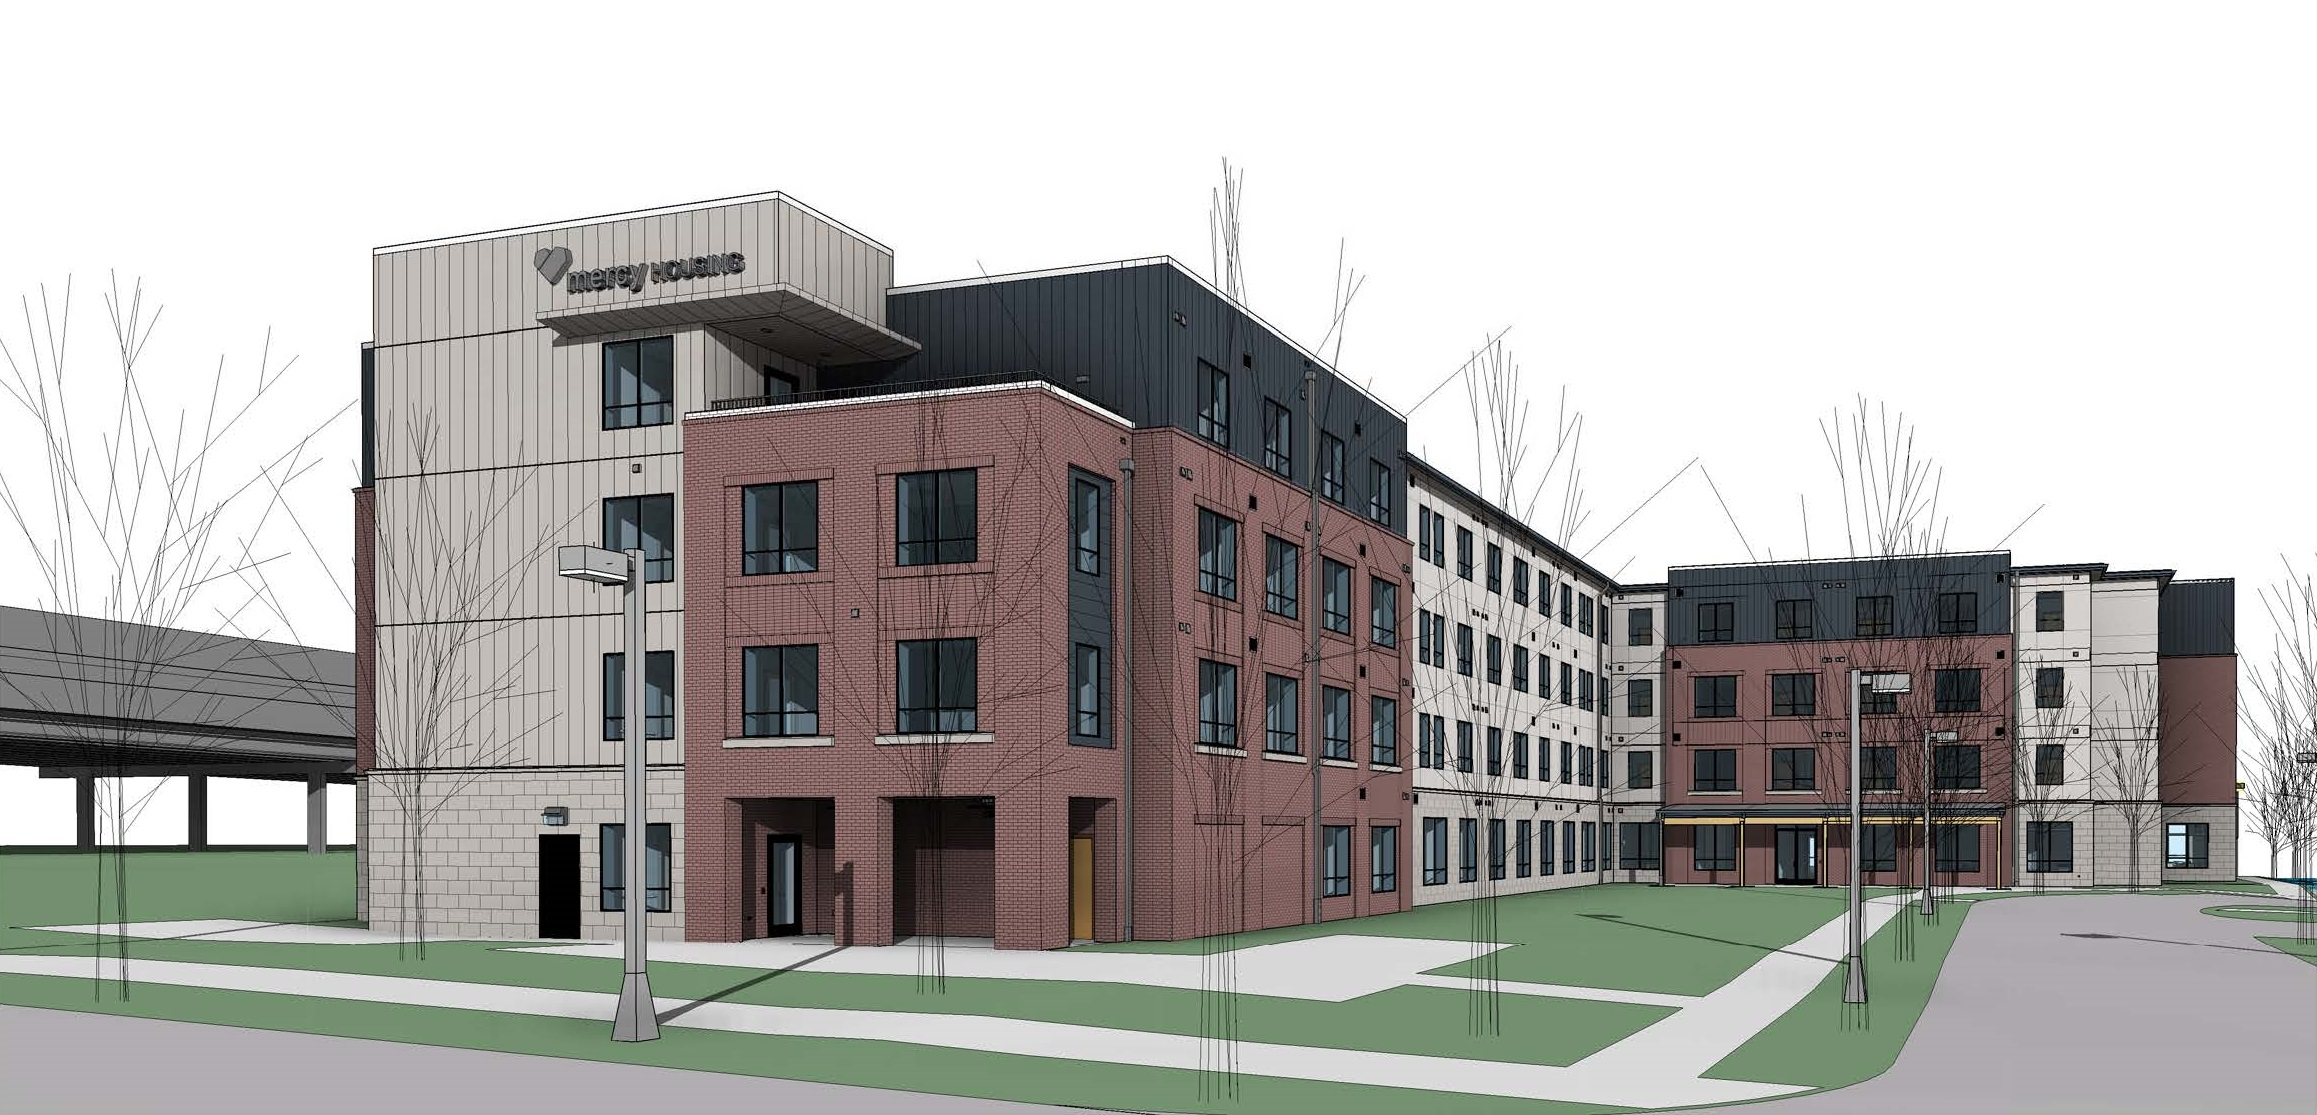 A new affordable housing project in Chamblee, just north of Atlanta.